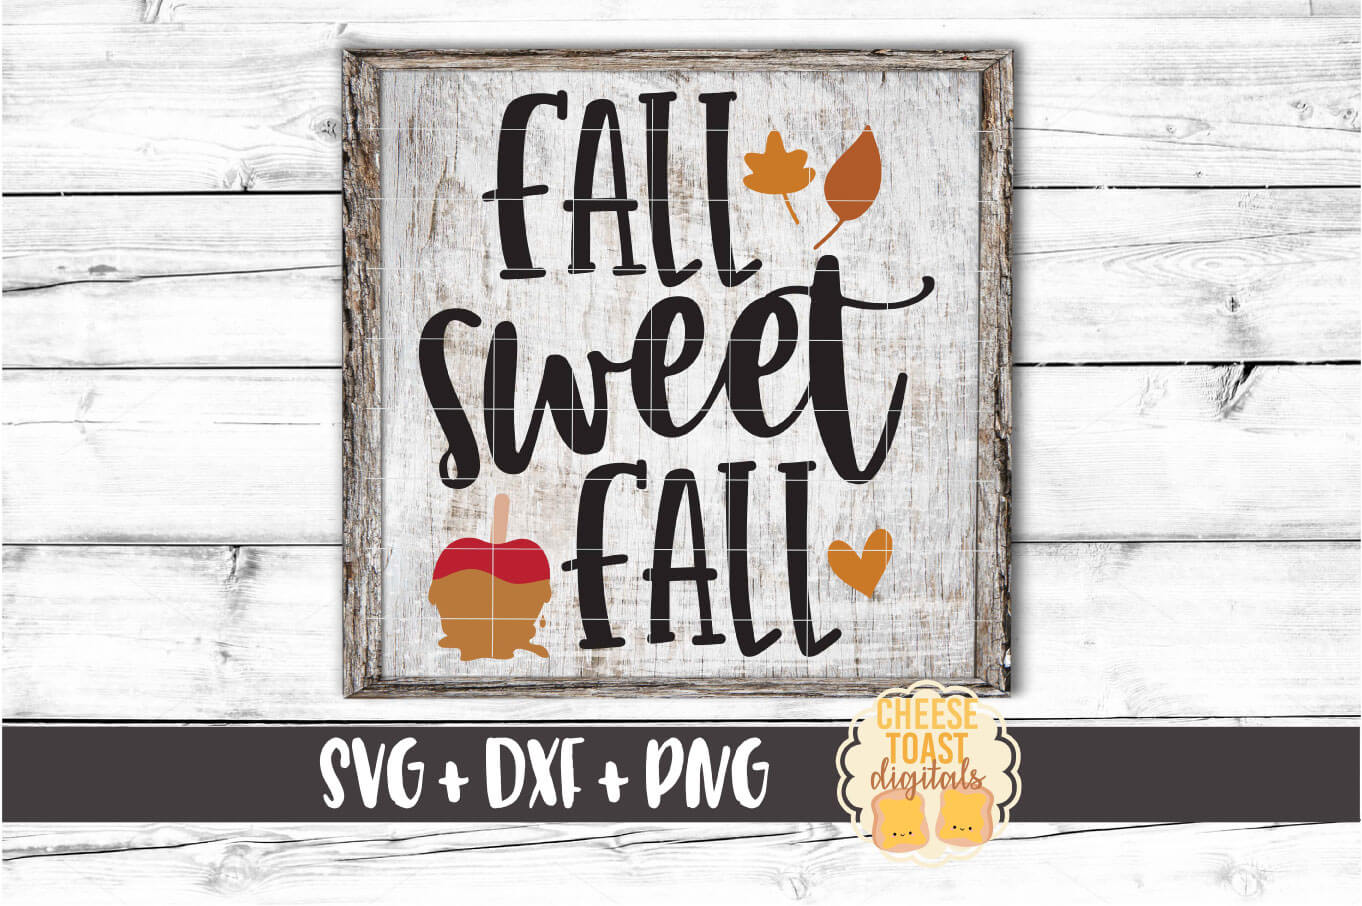 Fall Sweet Fall - Autumn Sign SVG PNG DXF Cut Files example image 1